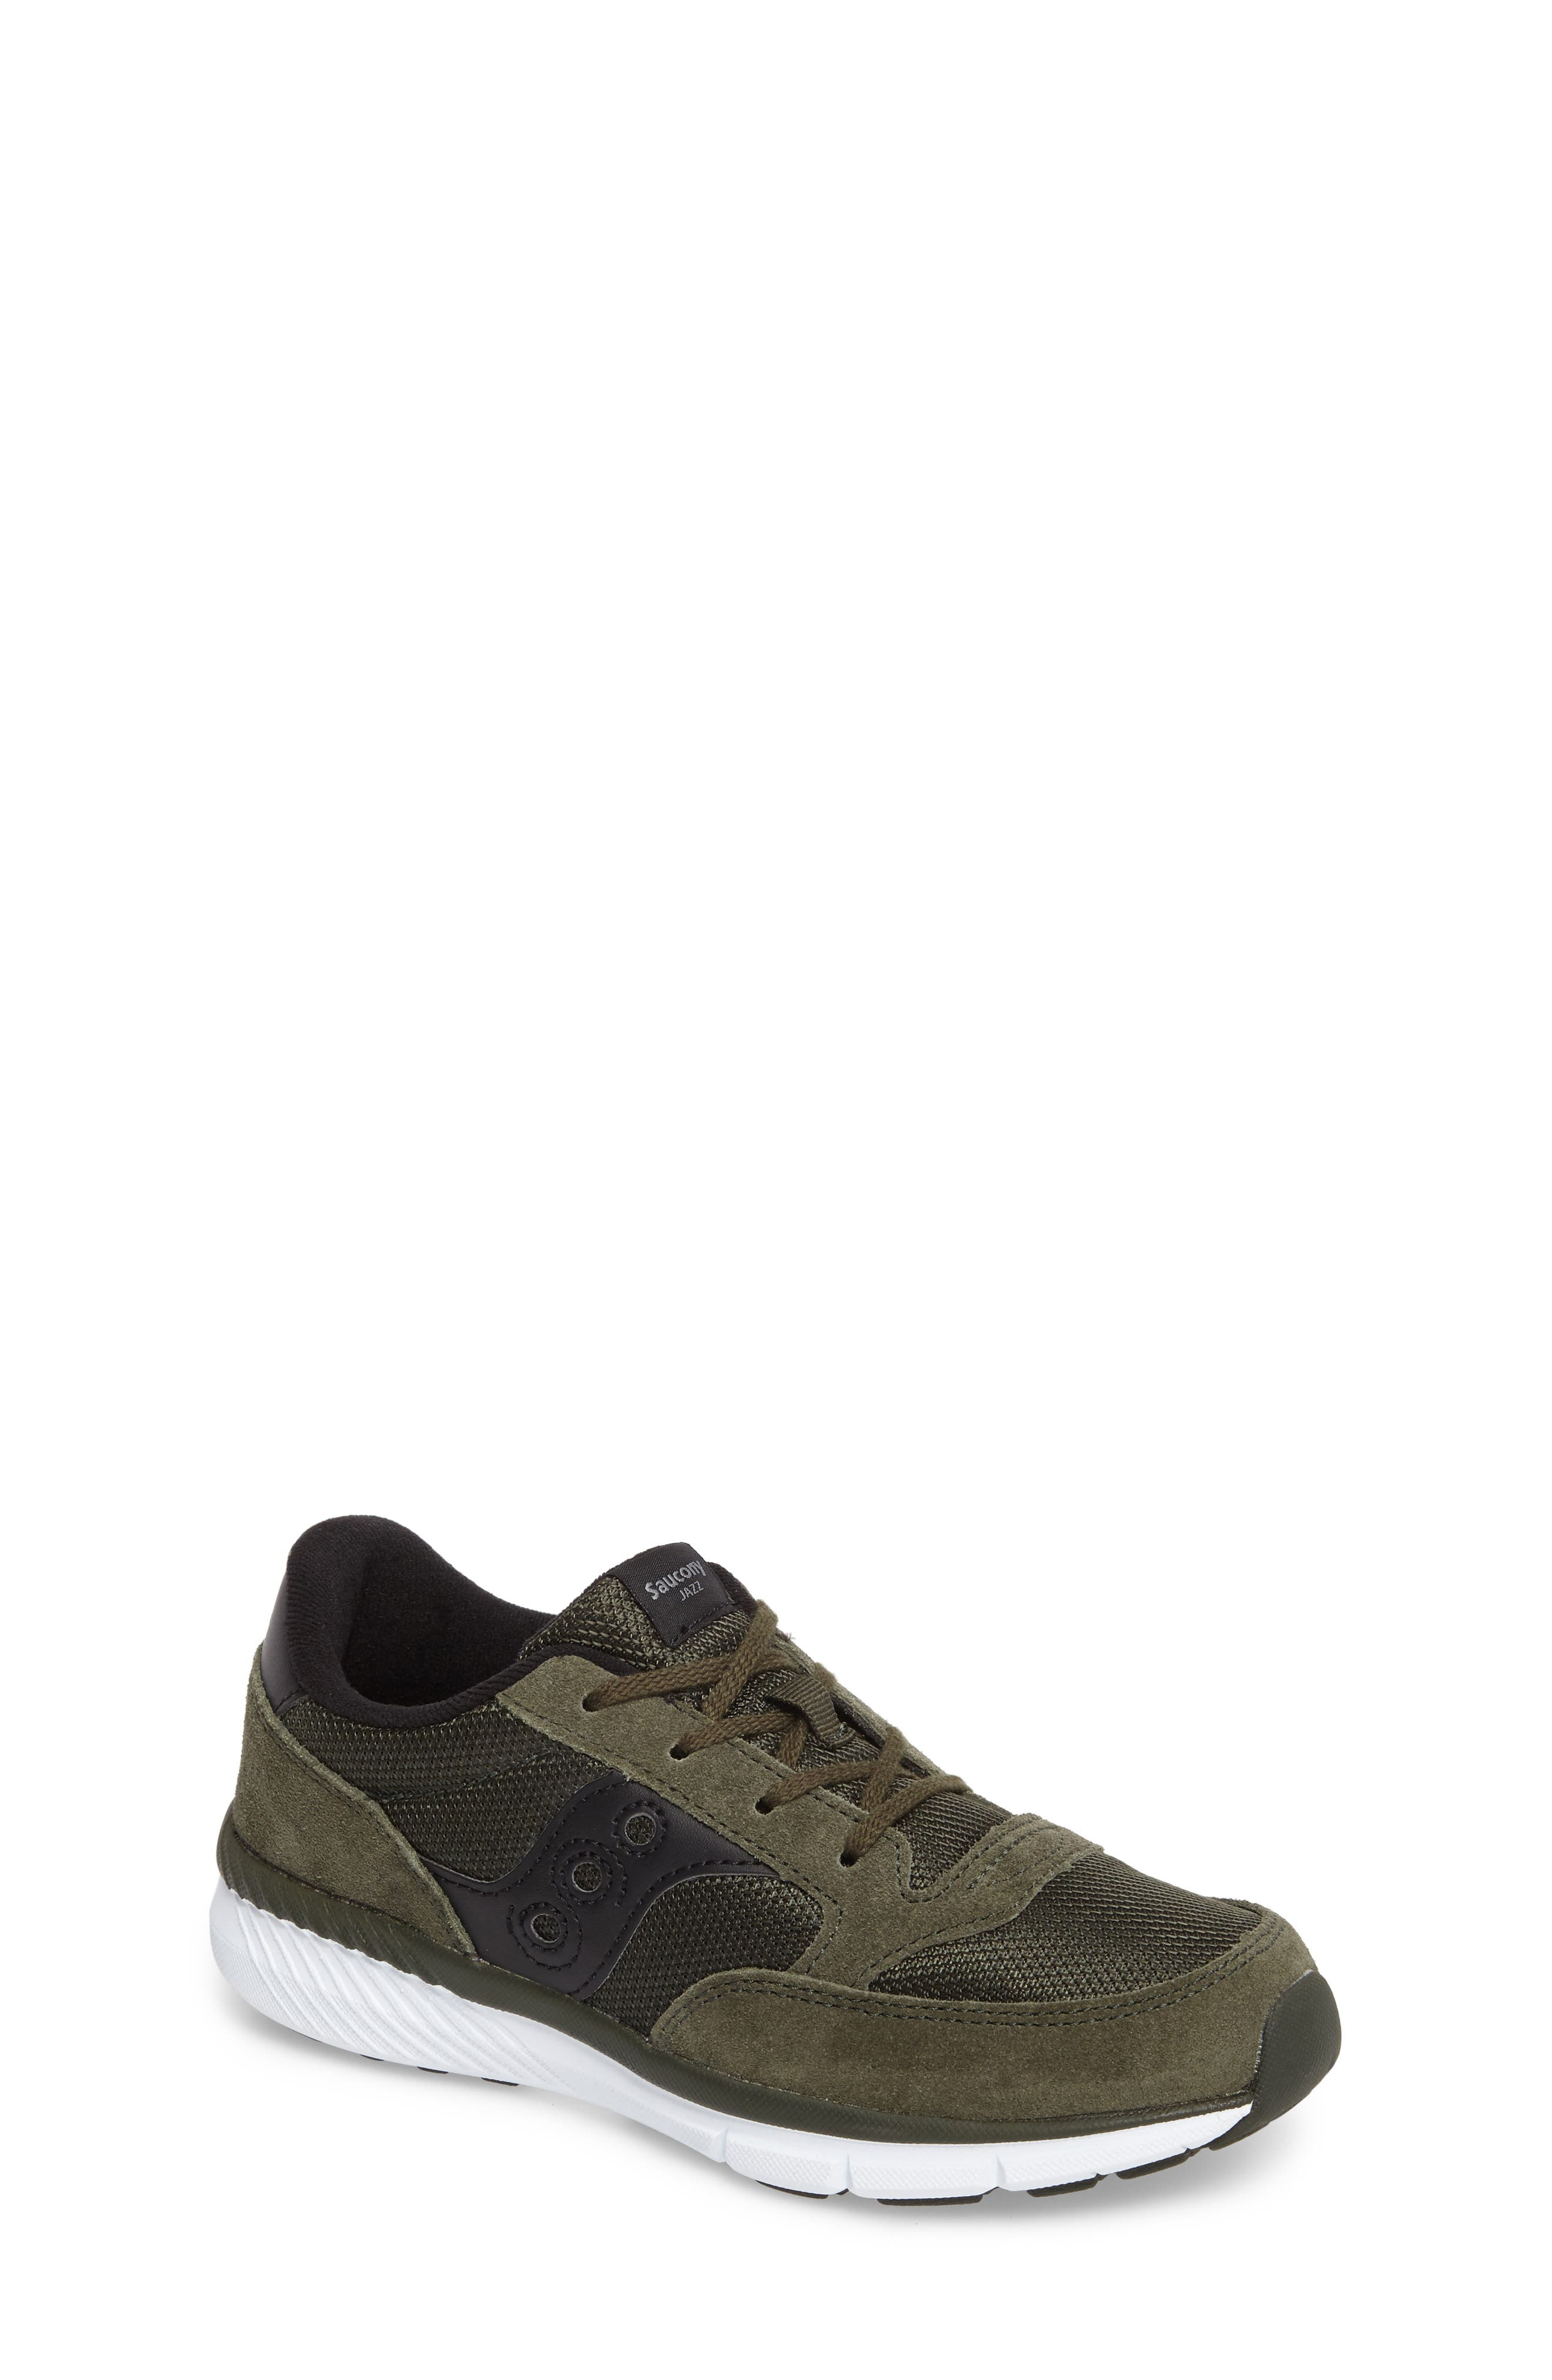 Jazz Lite Sneaker,                         Main,                         color, Olive